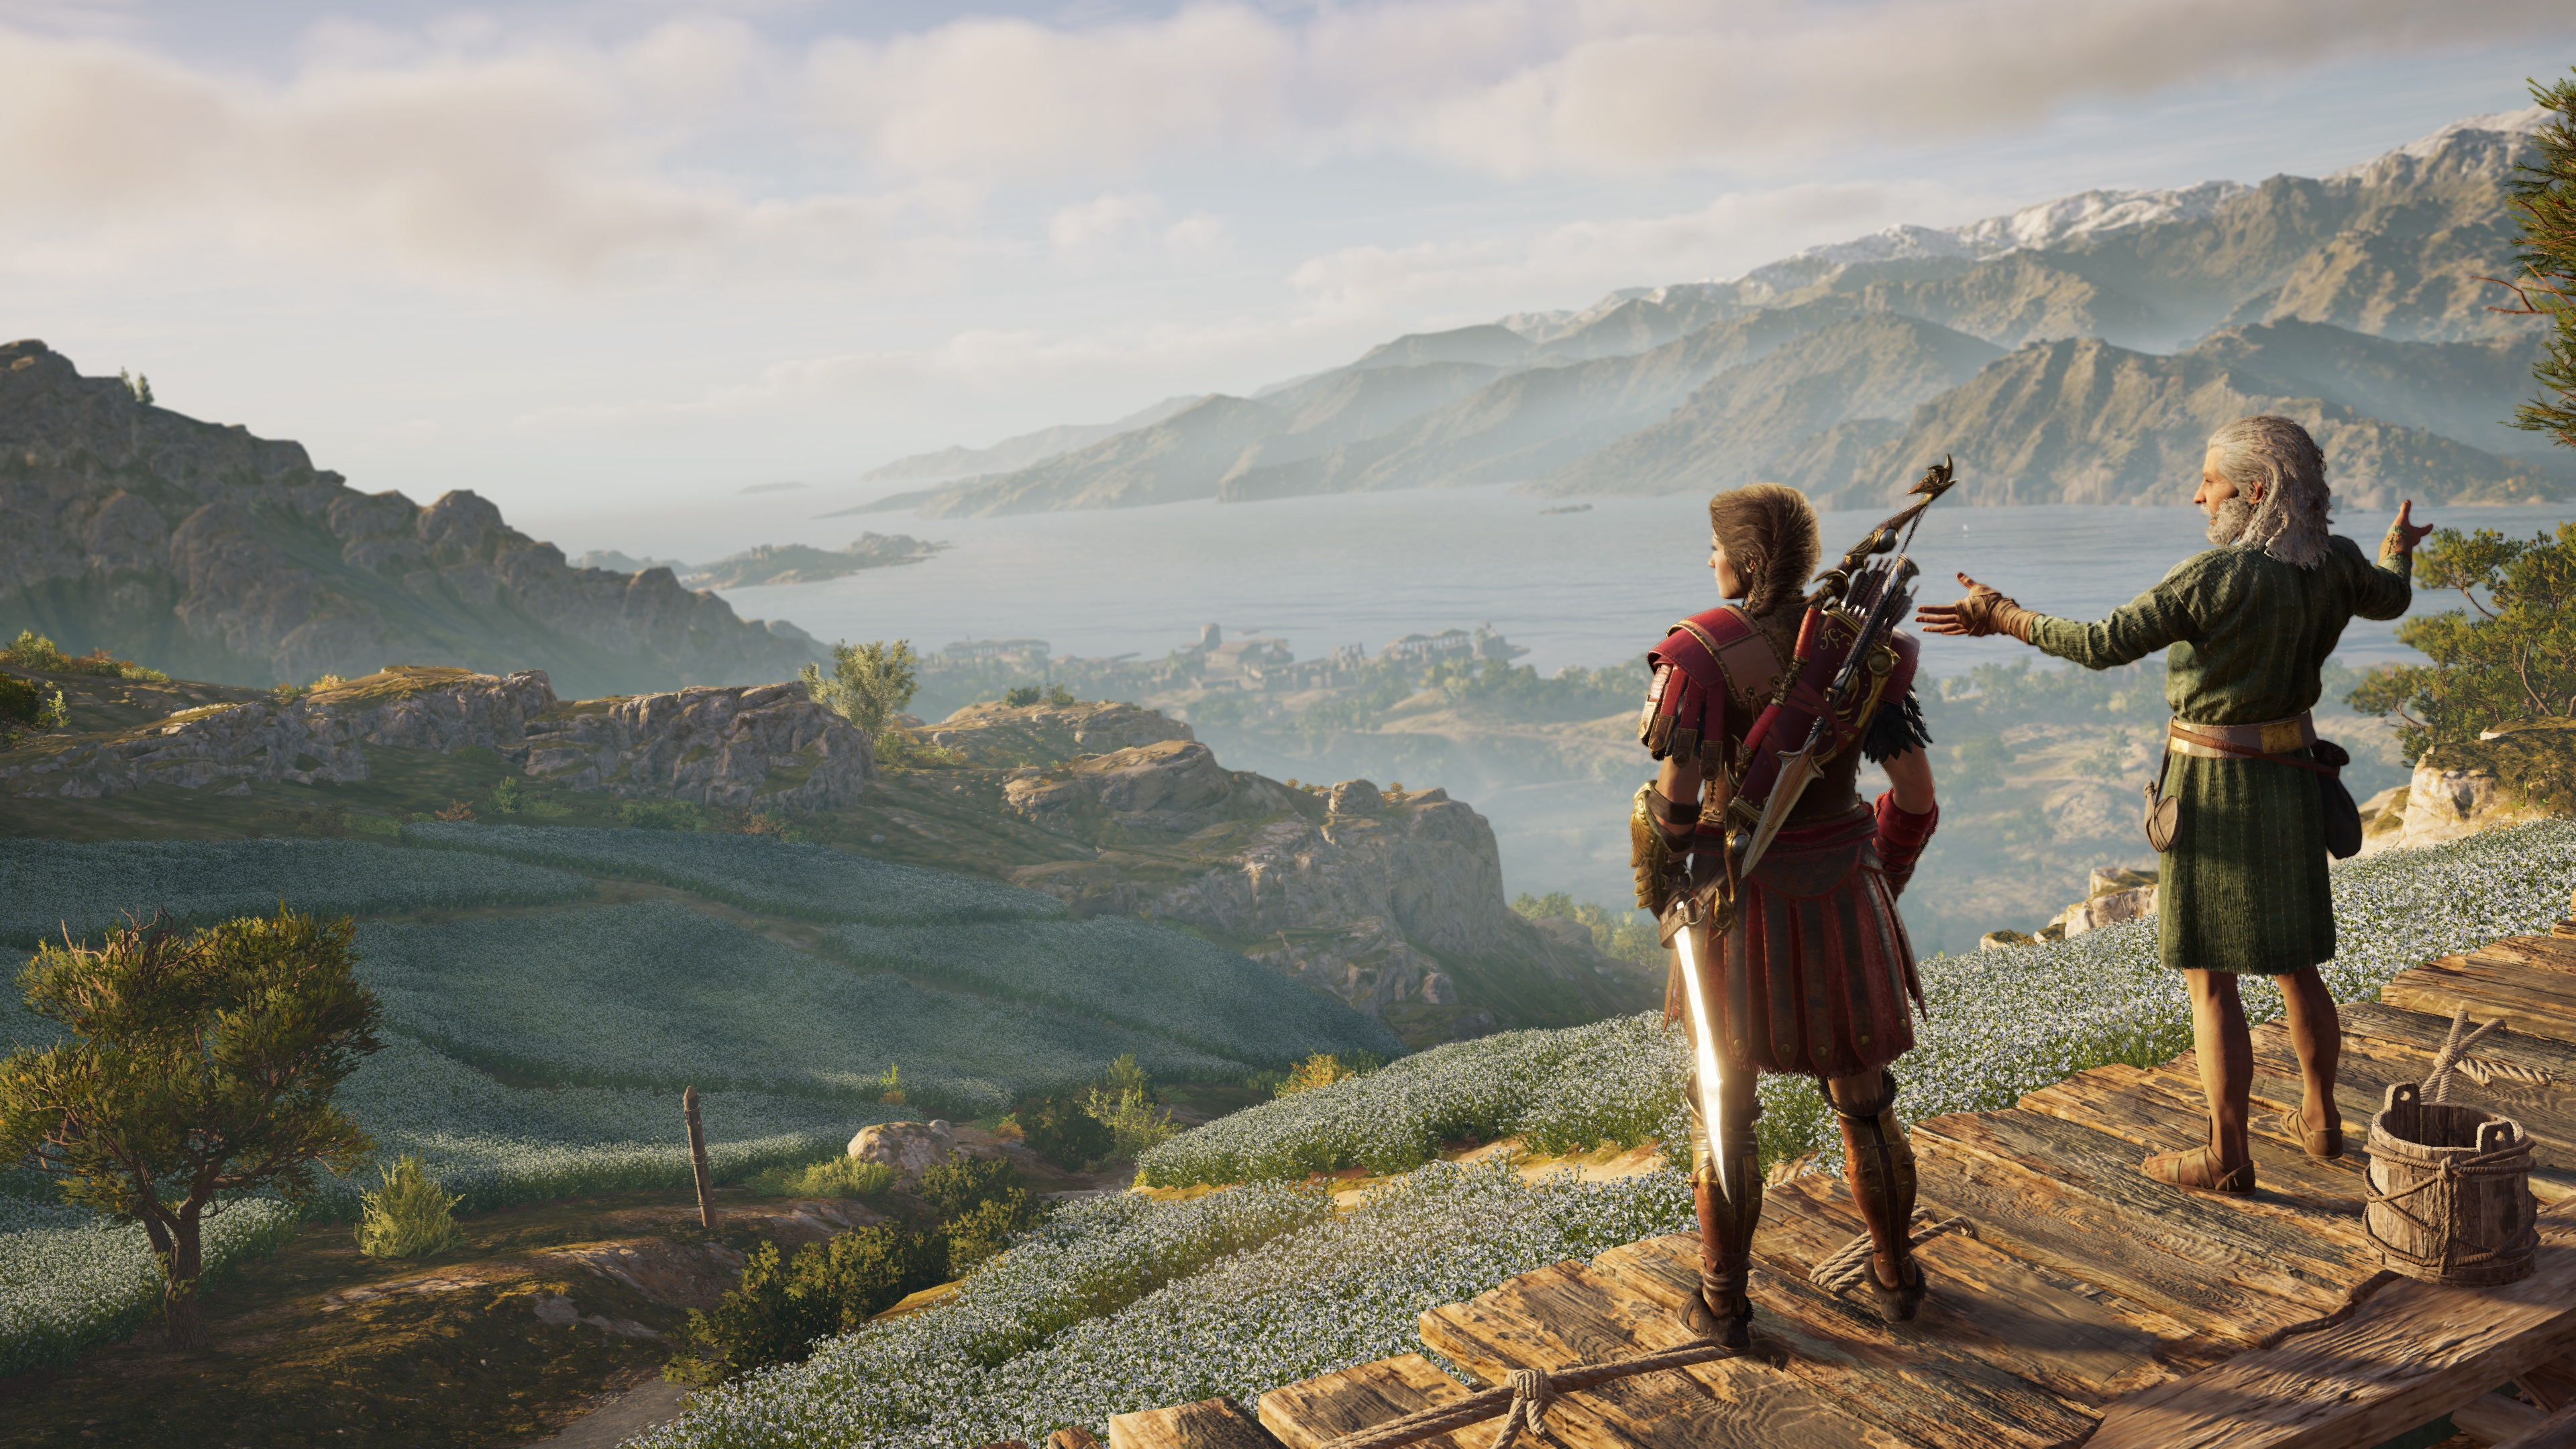 Assassin's Creed Odyssey's free DLC is the perfect excuse to return to an epic game